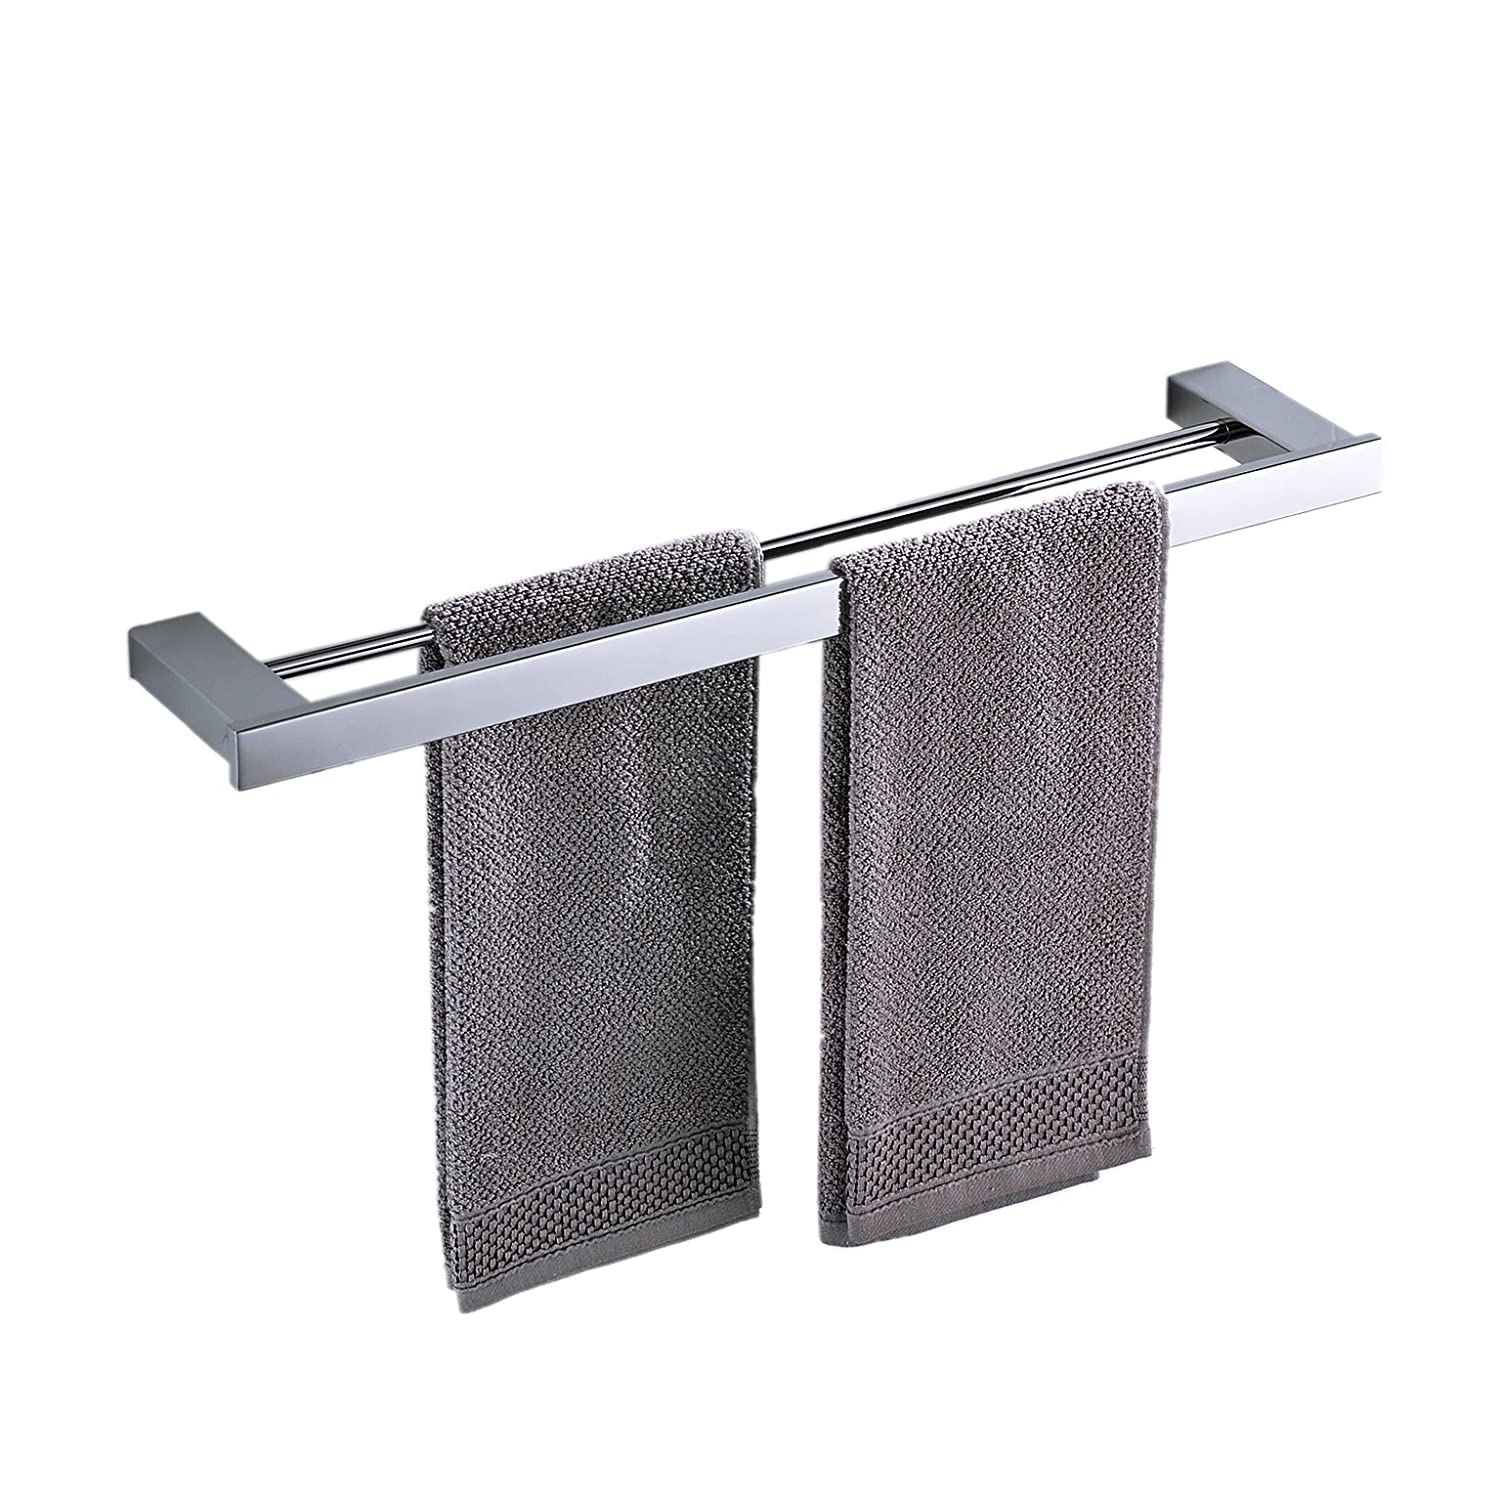 Beelee BA8003SC40 Bathroom Single Towel Bar Wall Mount Chromed Finish, SUS 304 Stainless Steel,400mm Ltd